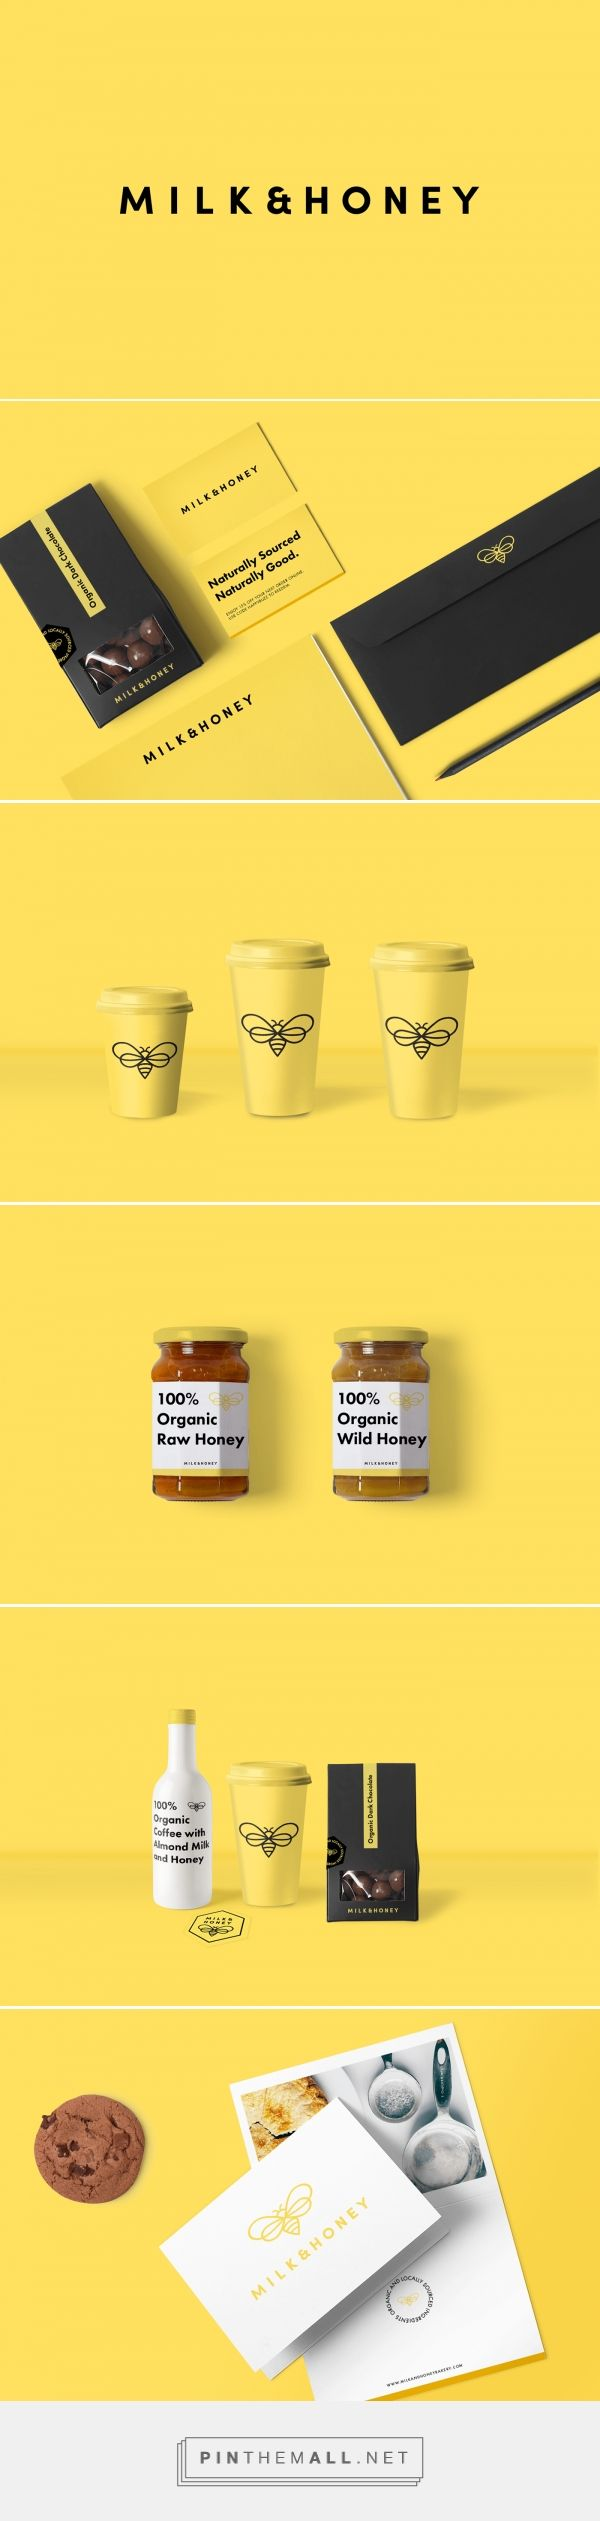 Milk & Honey Organic Bakery Branding and Packaging by Emmy de Leon Jones | Fivestar Branding Agency – Design and Branding Agency & Curated Inspiration Gallery